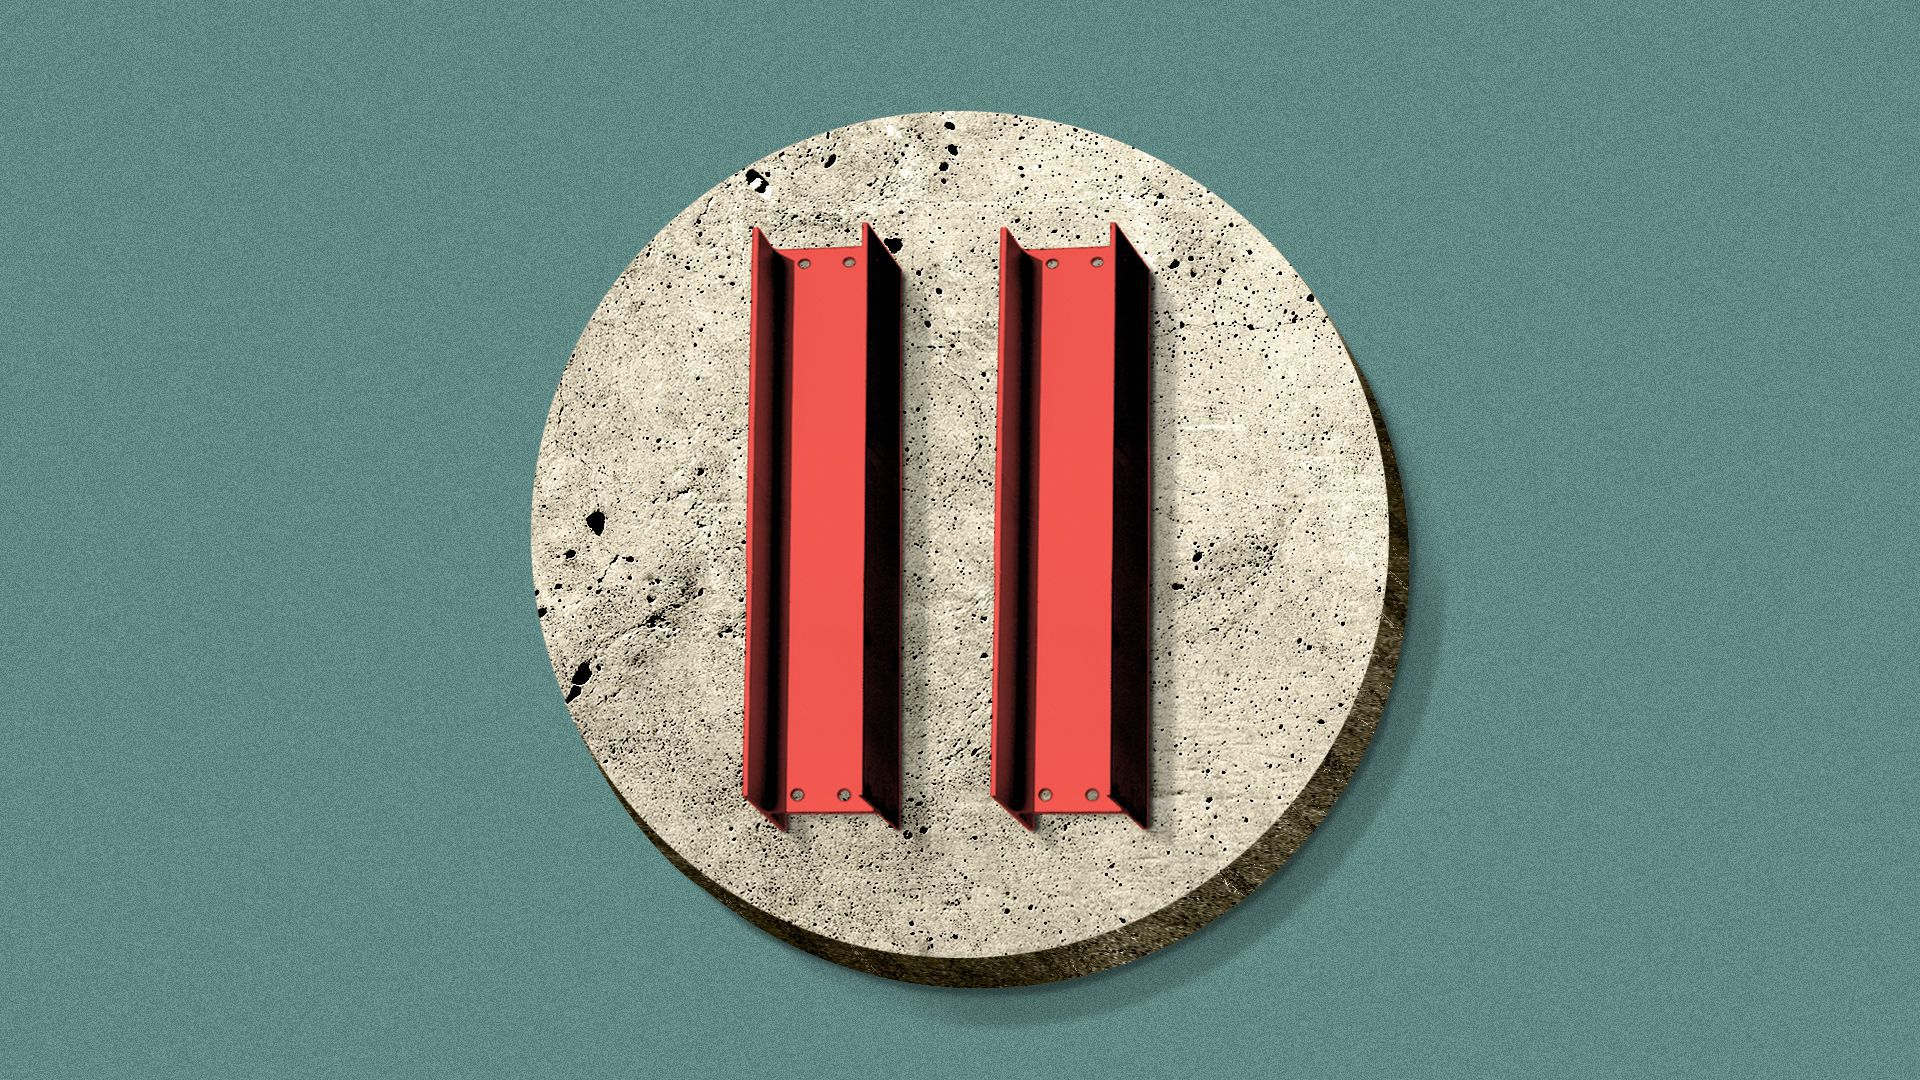 Illustration of a pause button made out of a concrete circle and two steel girders.